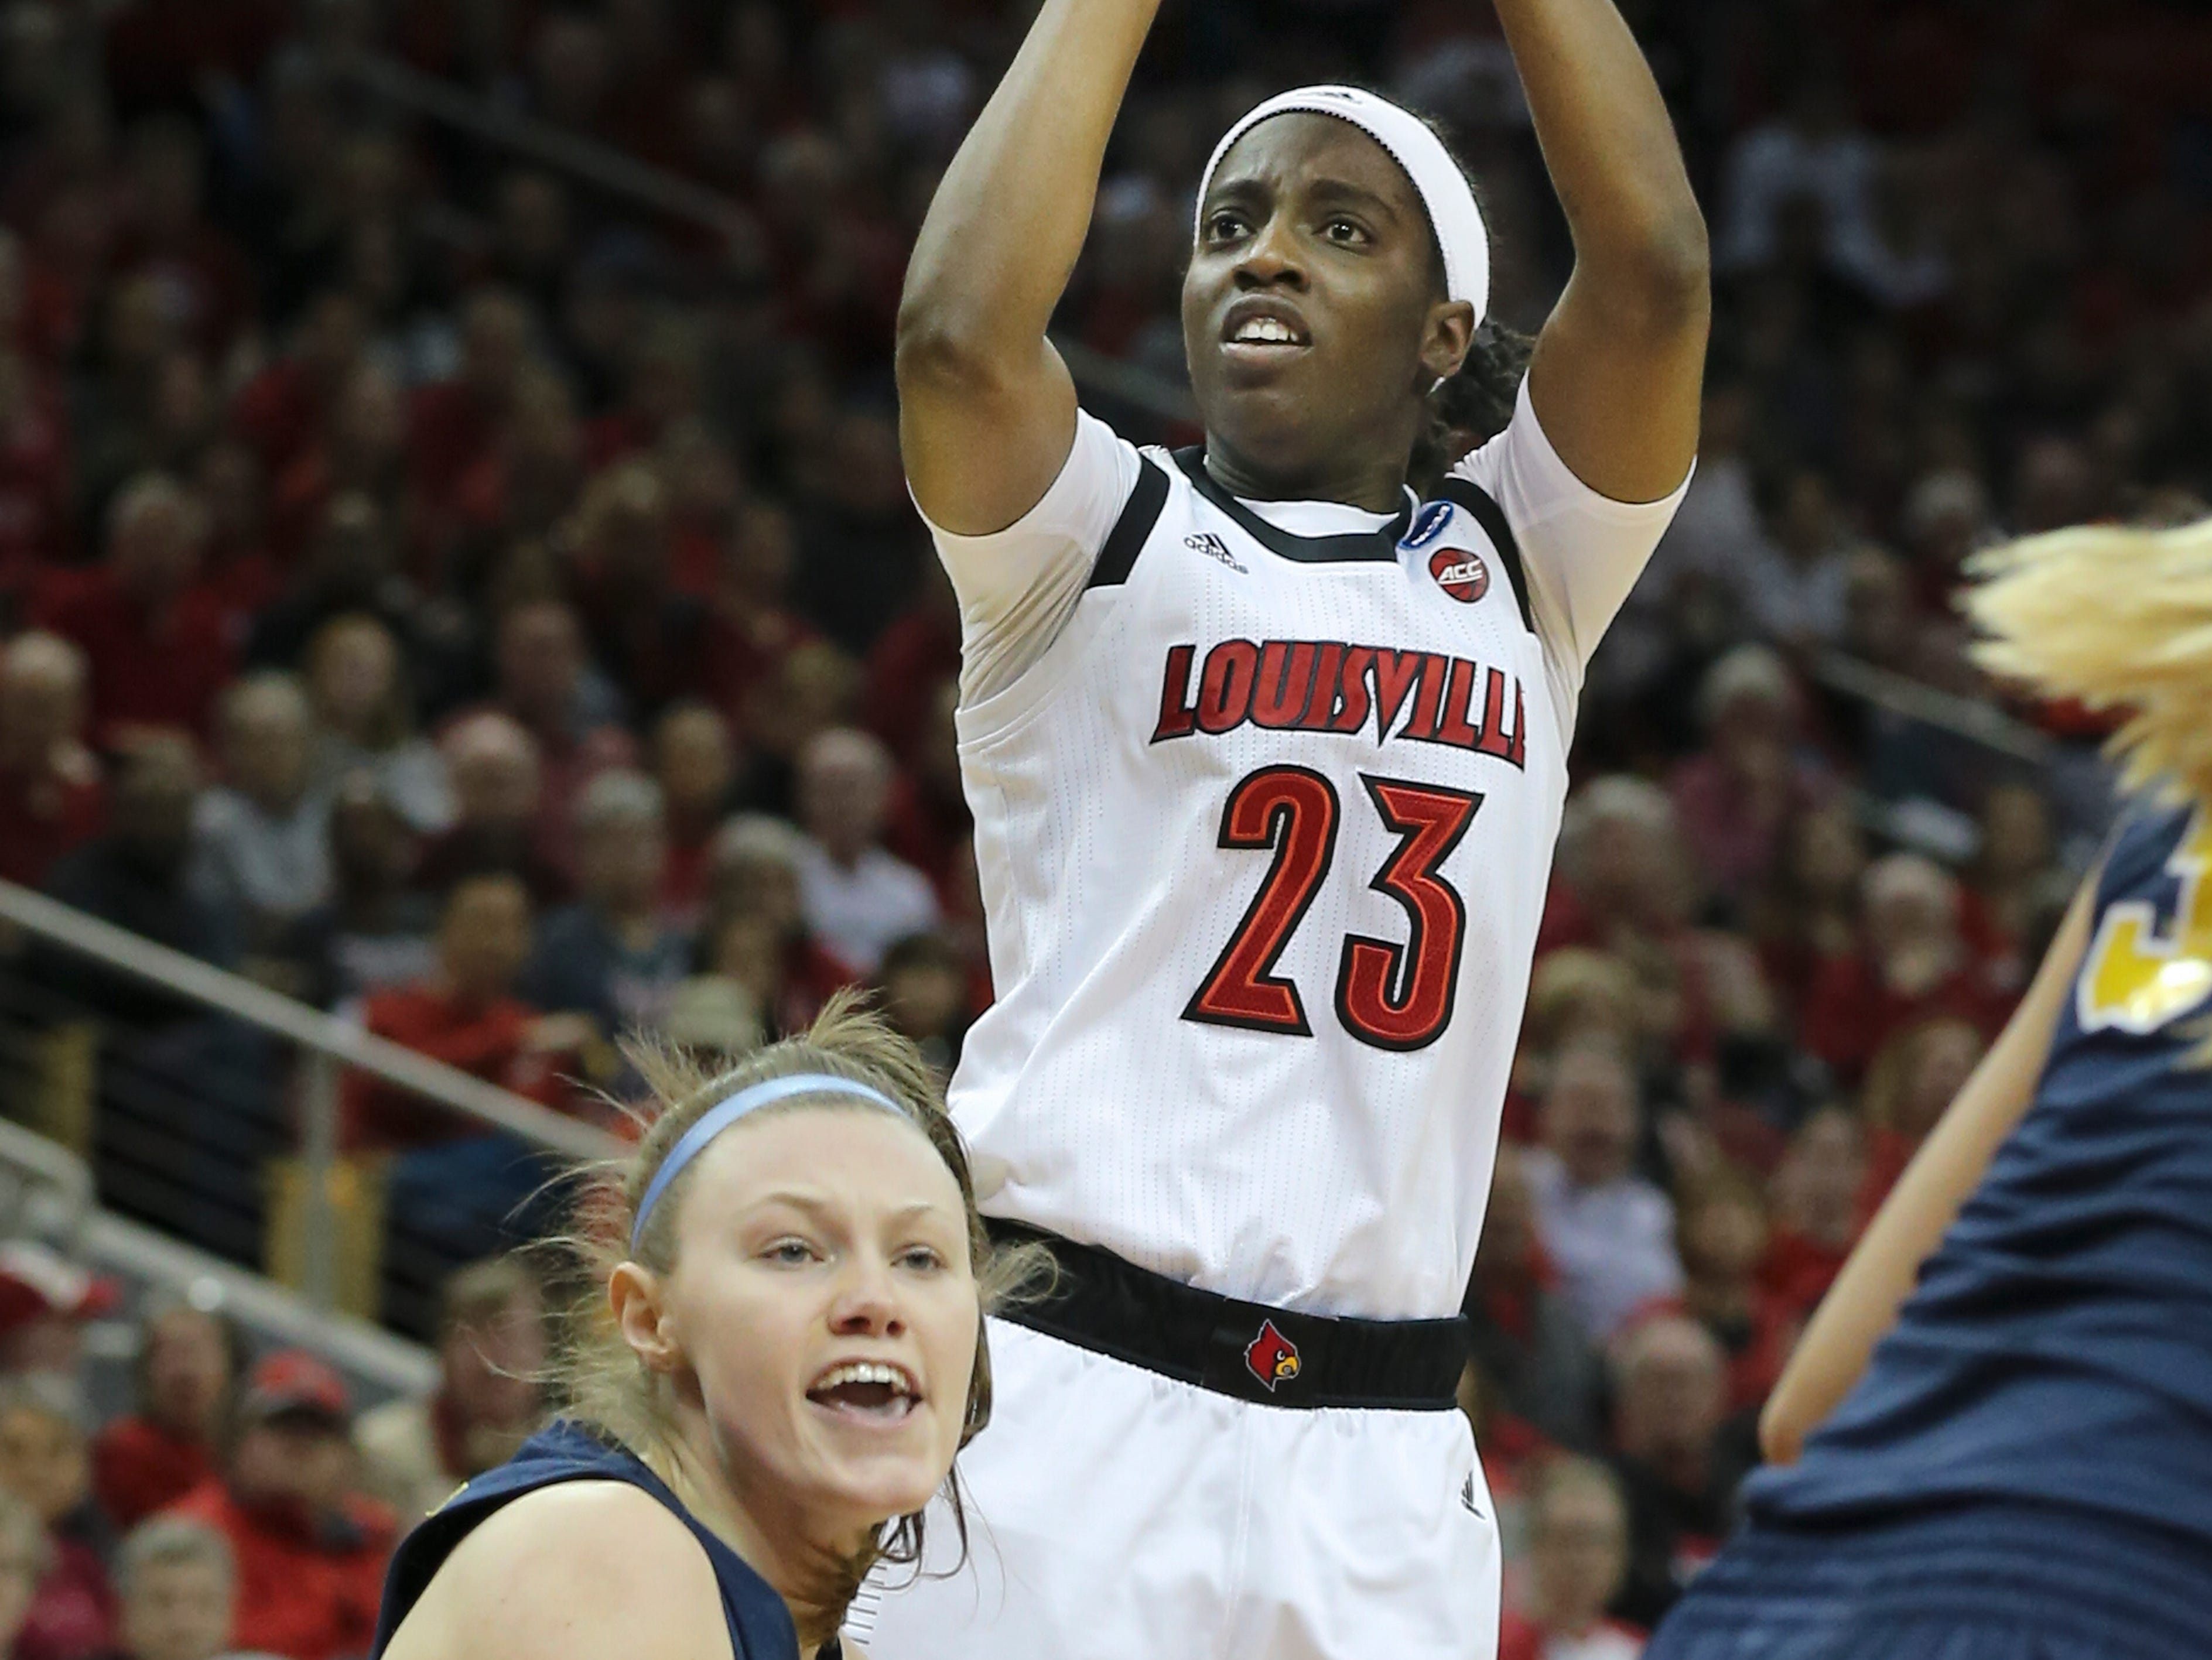 U of L's Jazmine Jones (23) fired up a jumper against the Michigan defense during the second round of their NCAA Tournament game at the Yum Center.Mar. 24, 2019